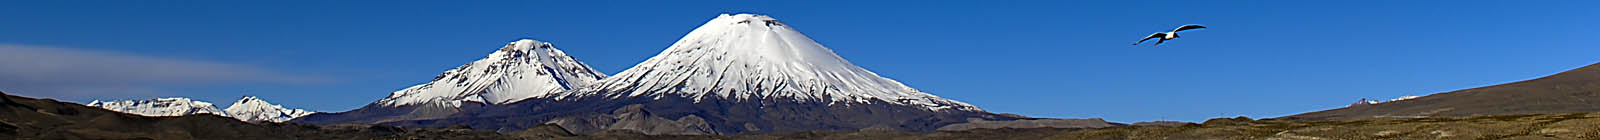 Parinacota, Pomerape, volcanoes, Chile - Banner